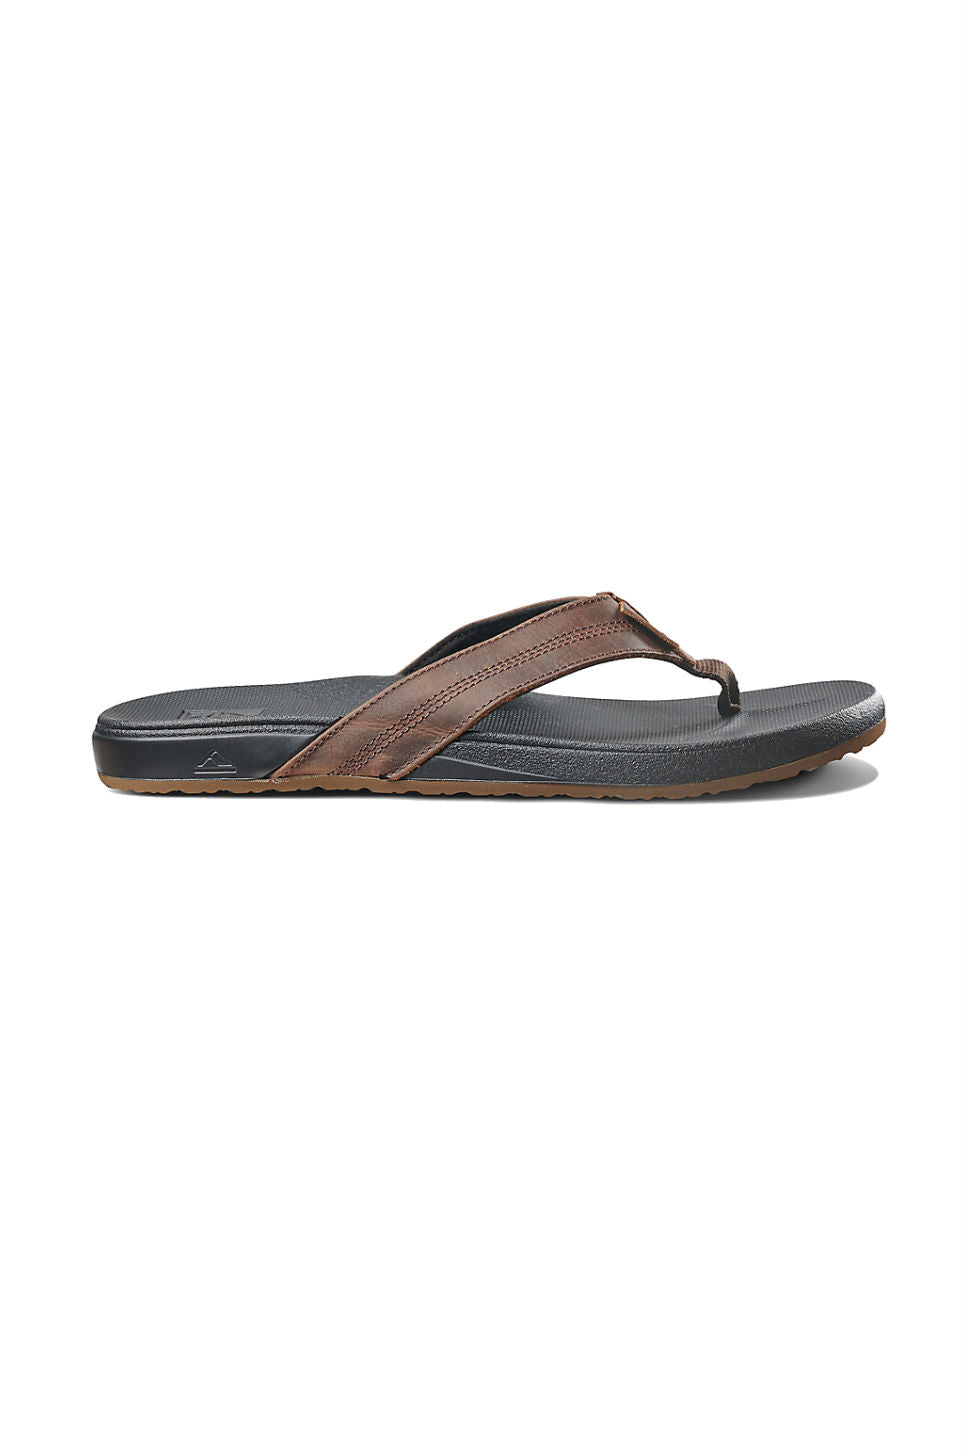 Reef - Cushion Bounce Phantom LE - Black/Brown - Side